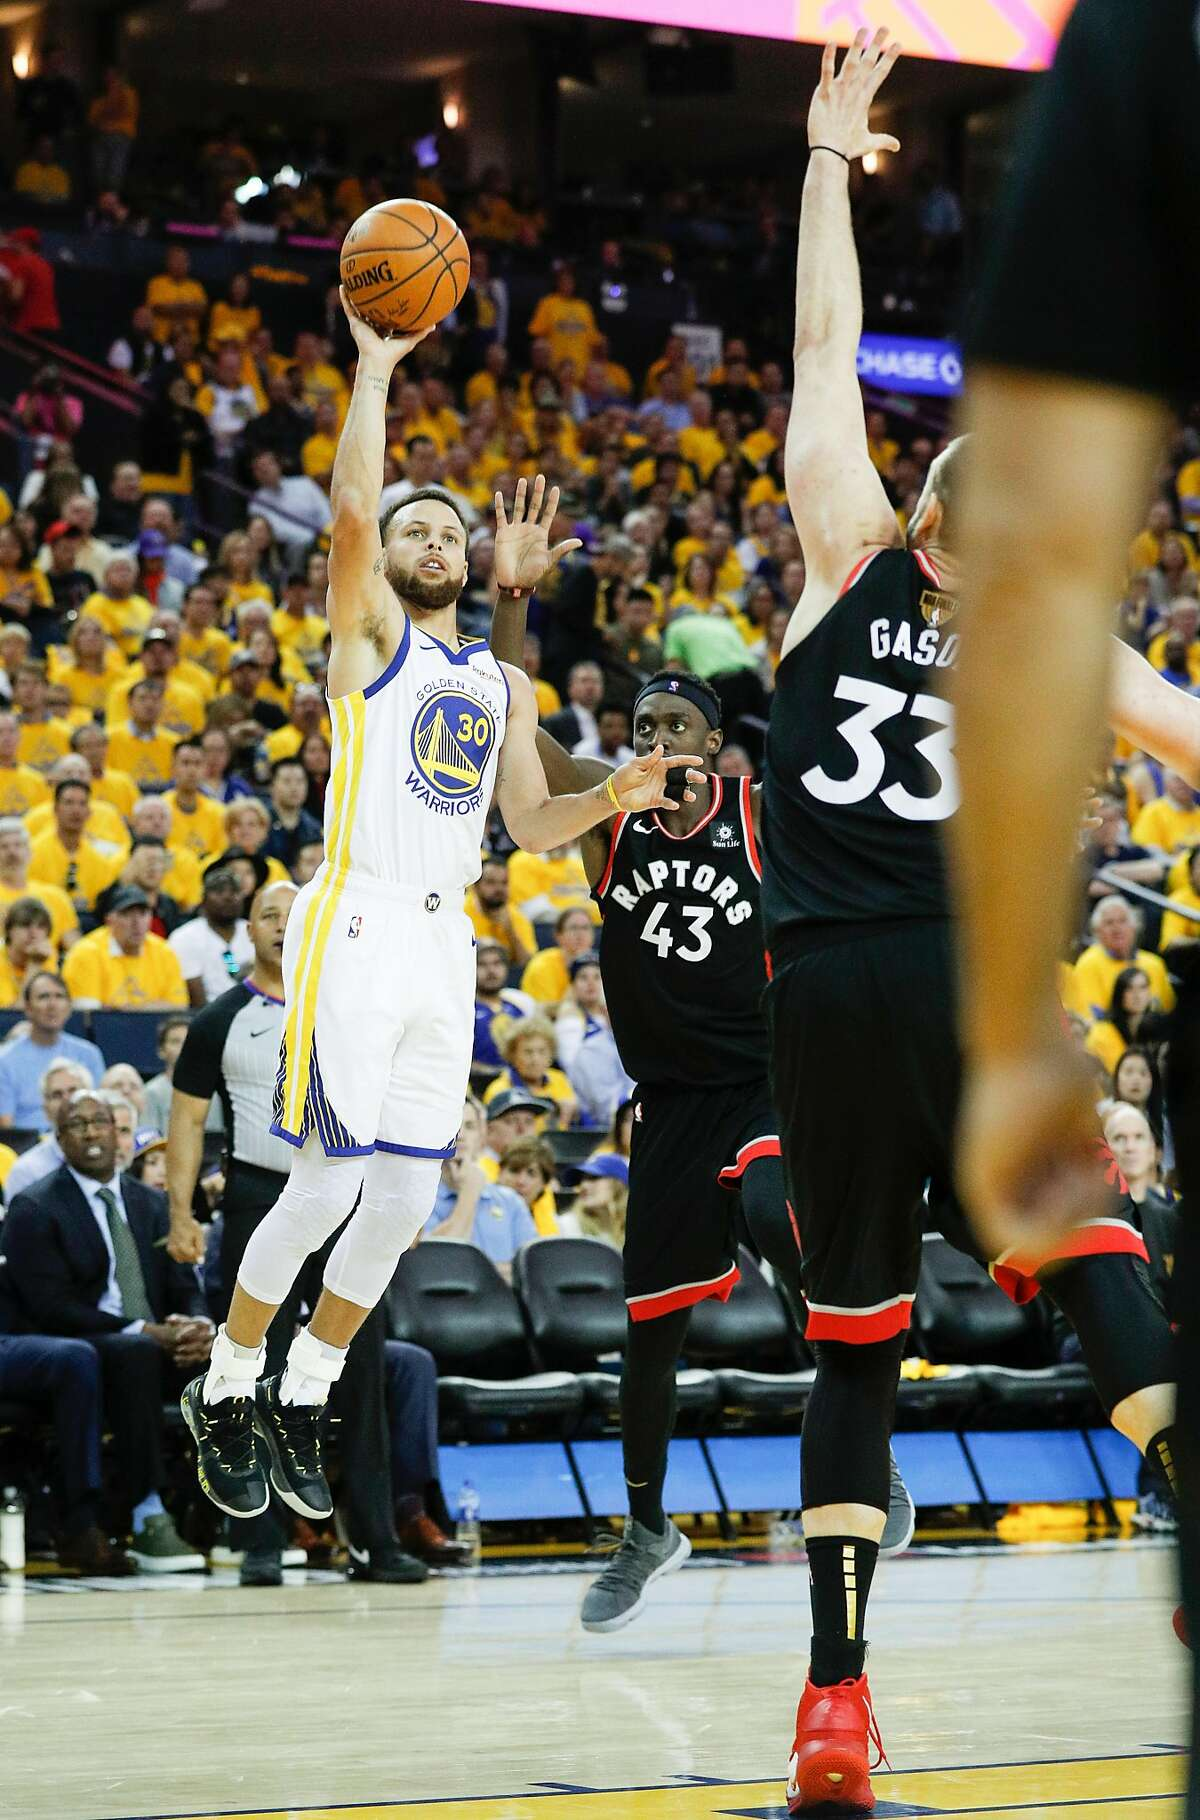 Golden State Warriors' Stephen Curry shoots over Toronto Raptors' Marc Gasol in the third quarter during game 3 of the NBA Finals between the Golden State Warriors and the Toronto Raptors at Oracle Arena on Wednesday, June 5, 2019 in Oakland, Calif.